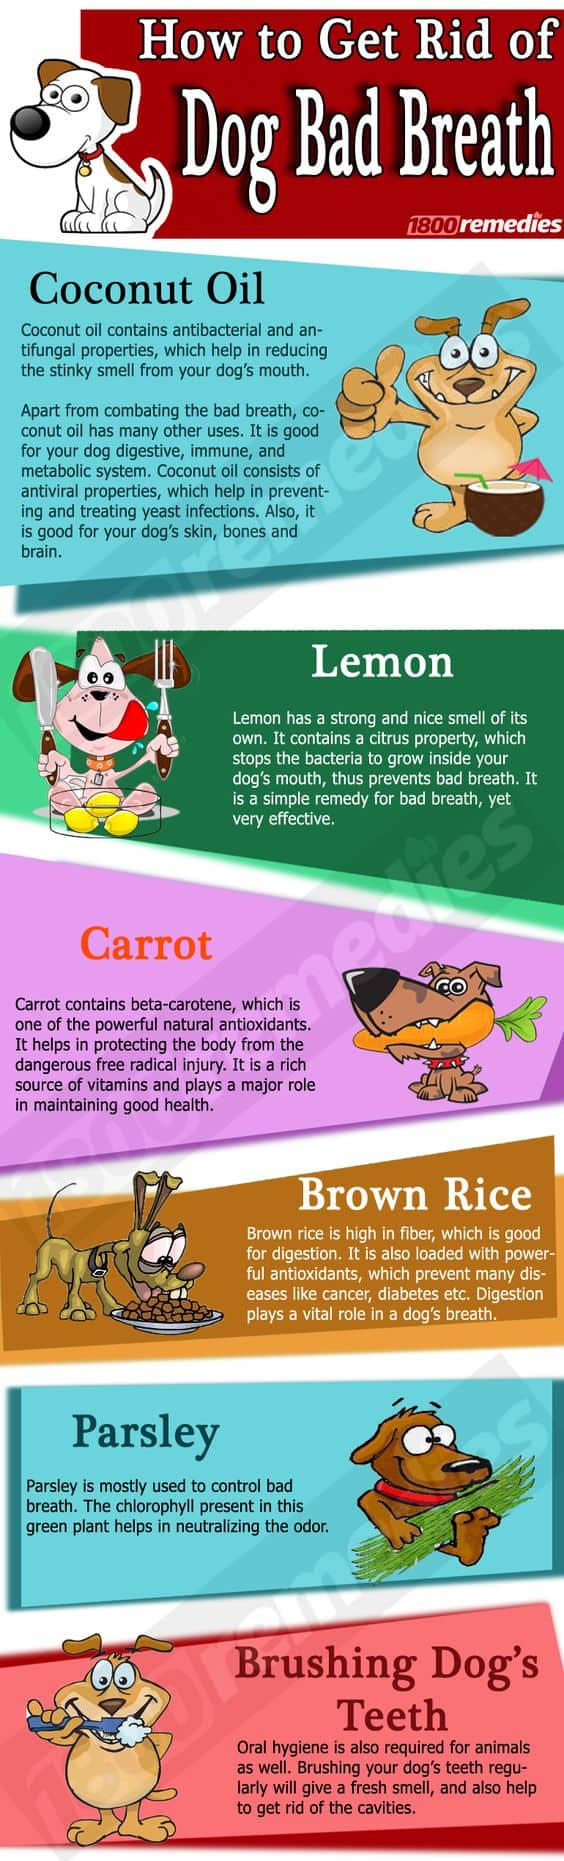 How To Get Rid Of Dog Breath Home Remedies